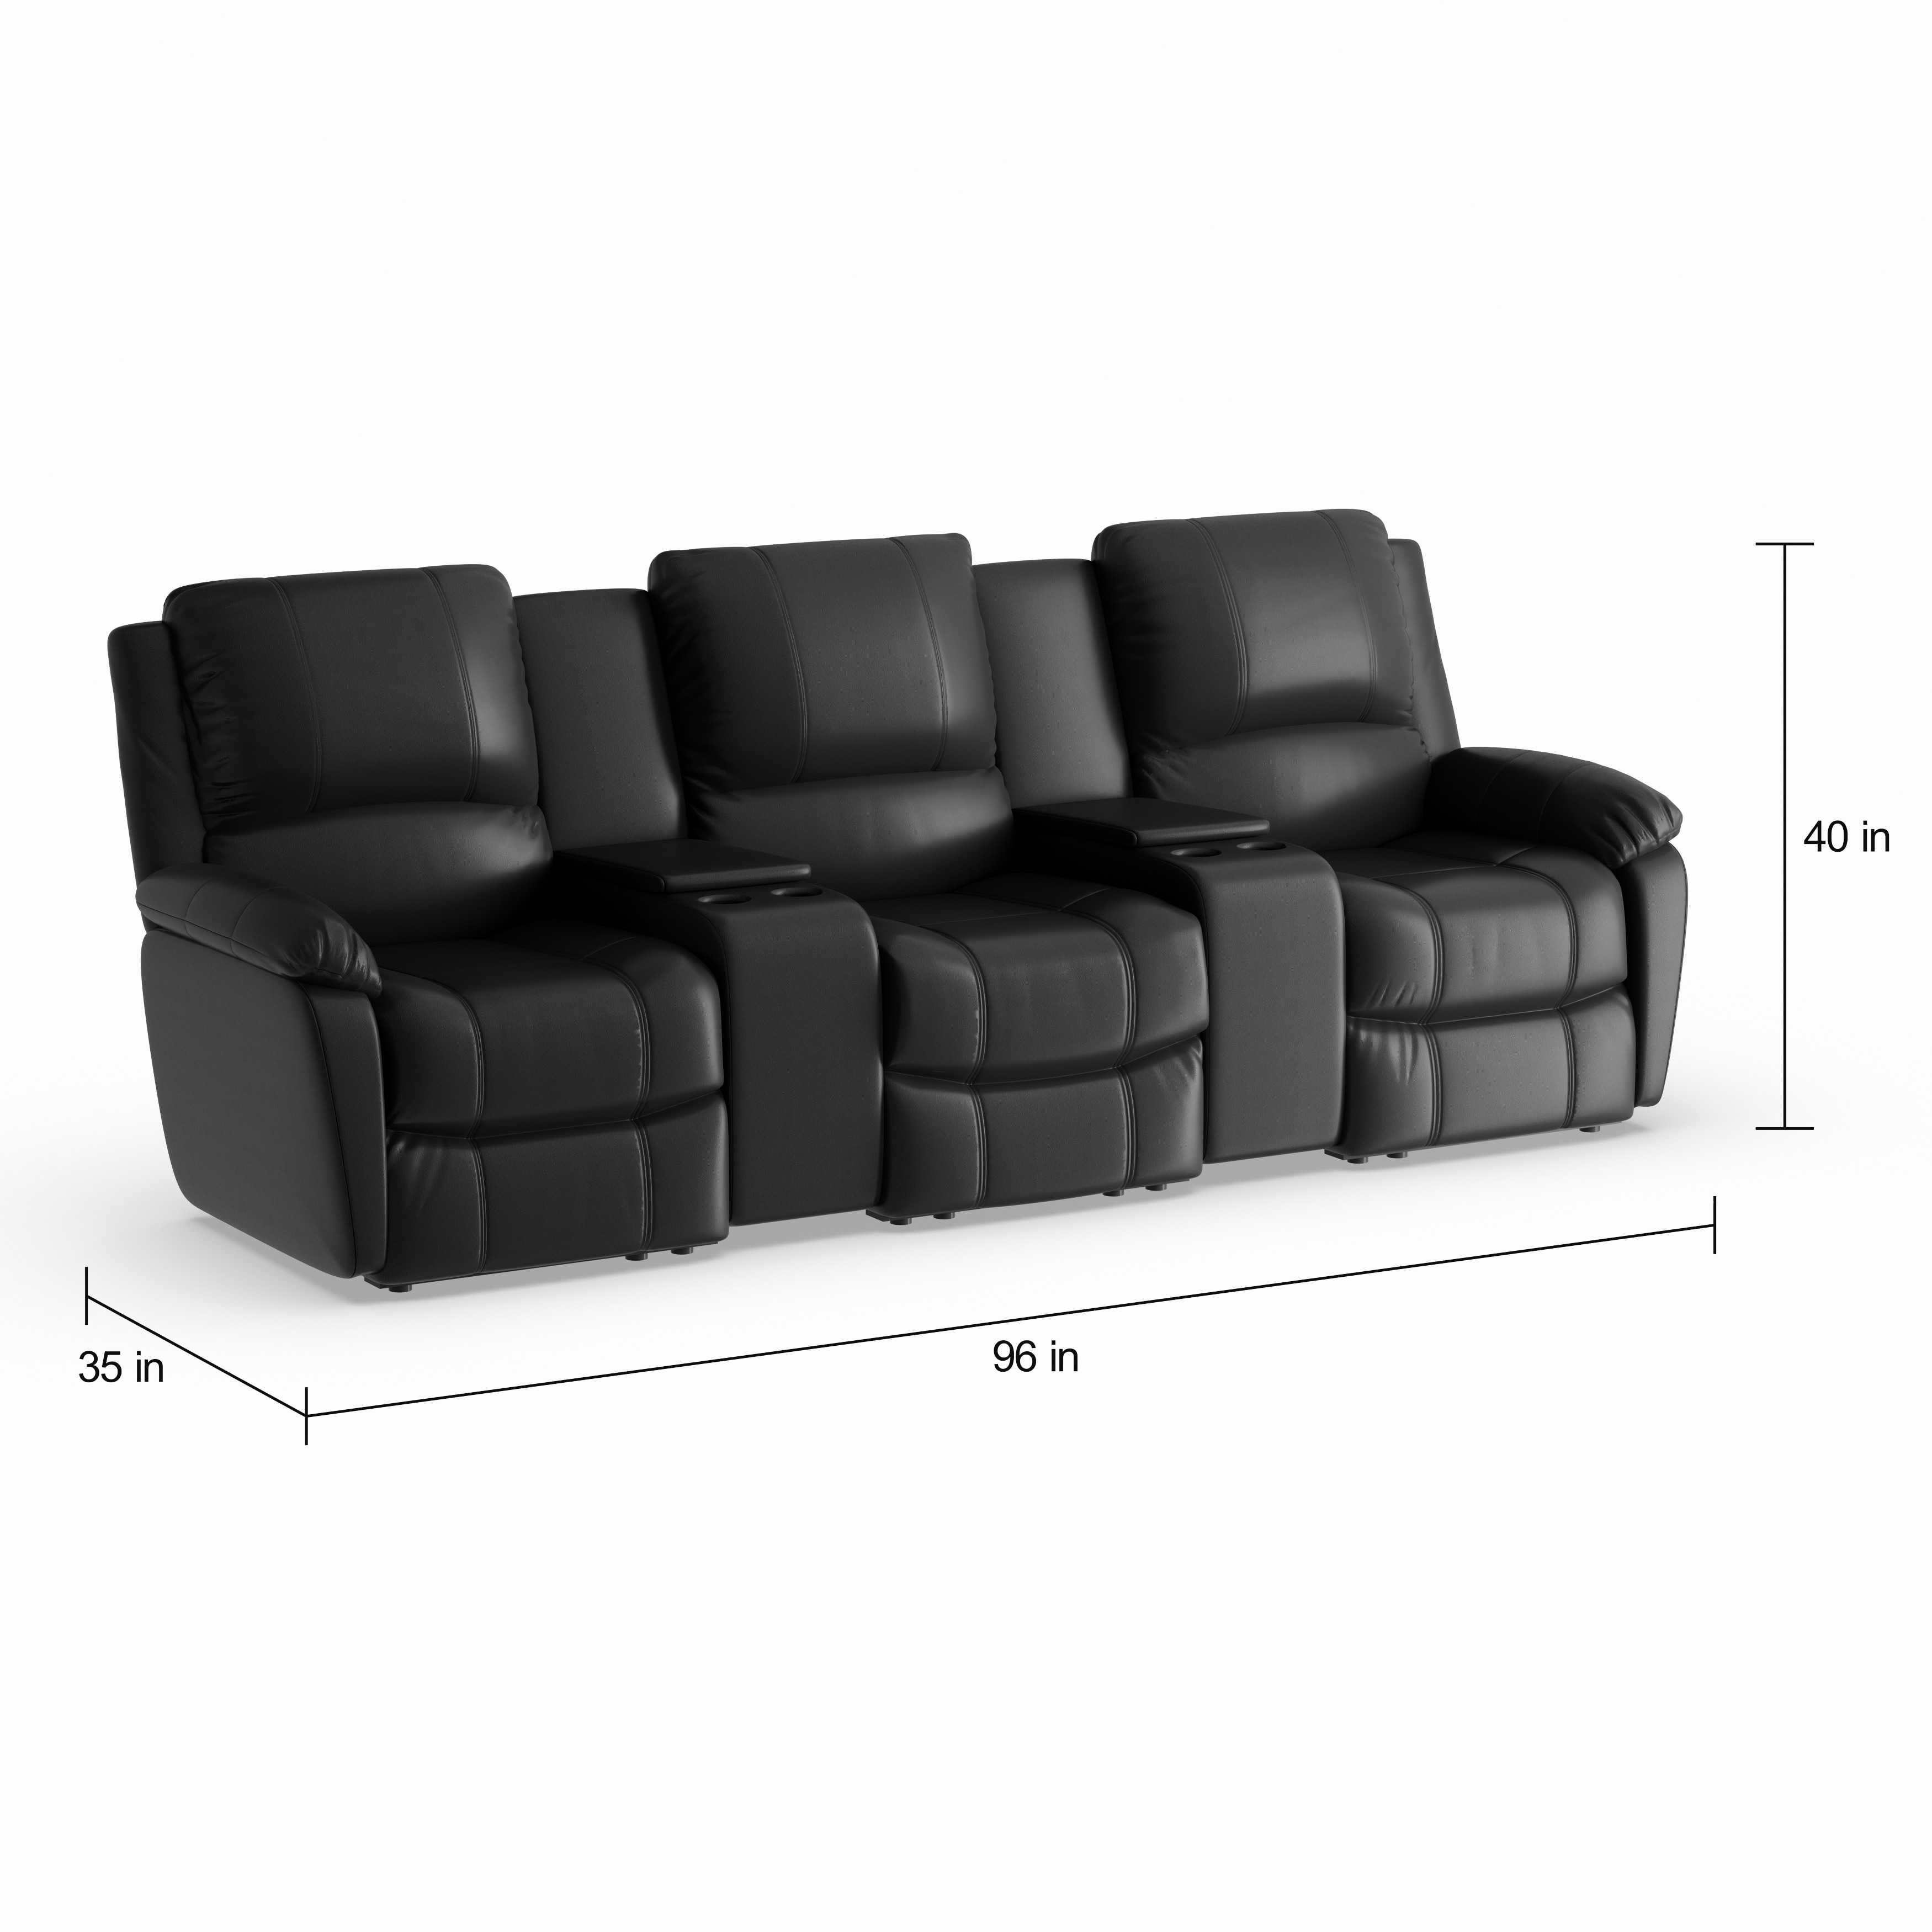 Strick & Bolton Wyeth 3-seat Black Leather Reclining Seating Unit